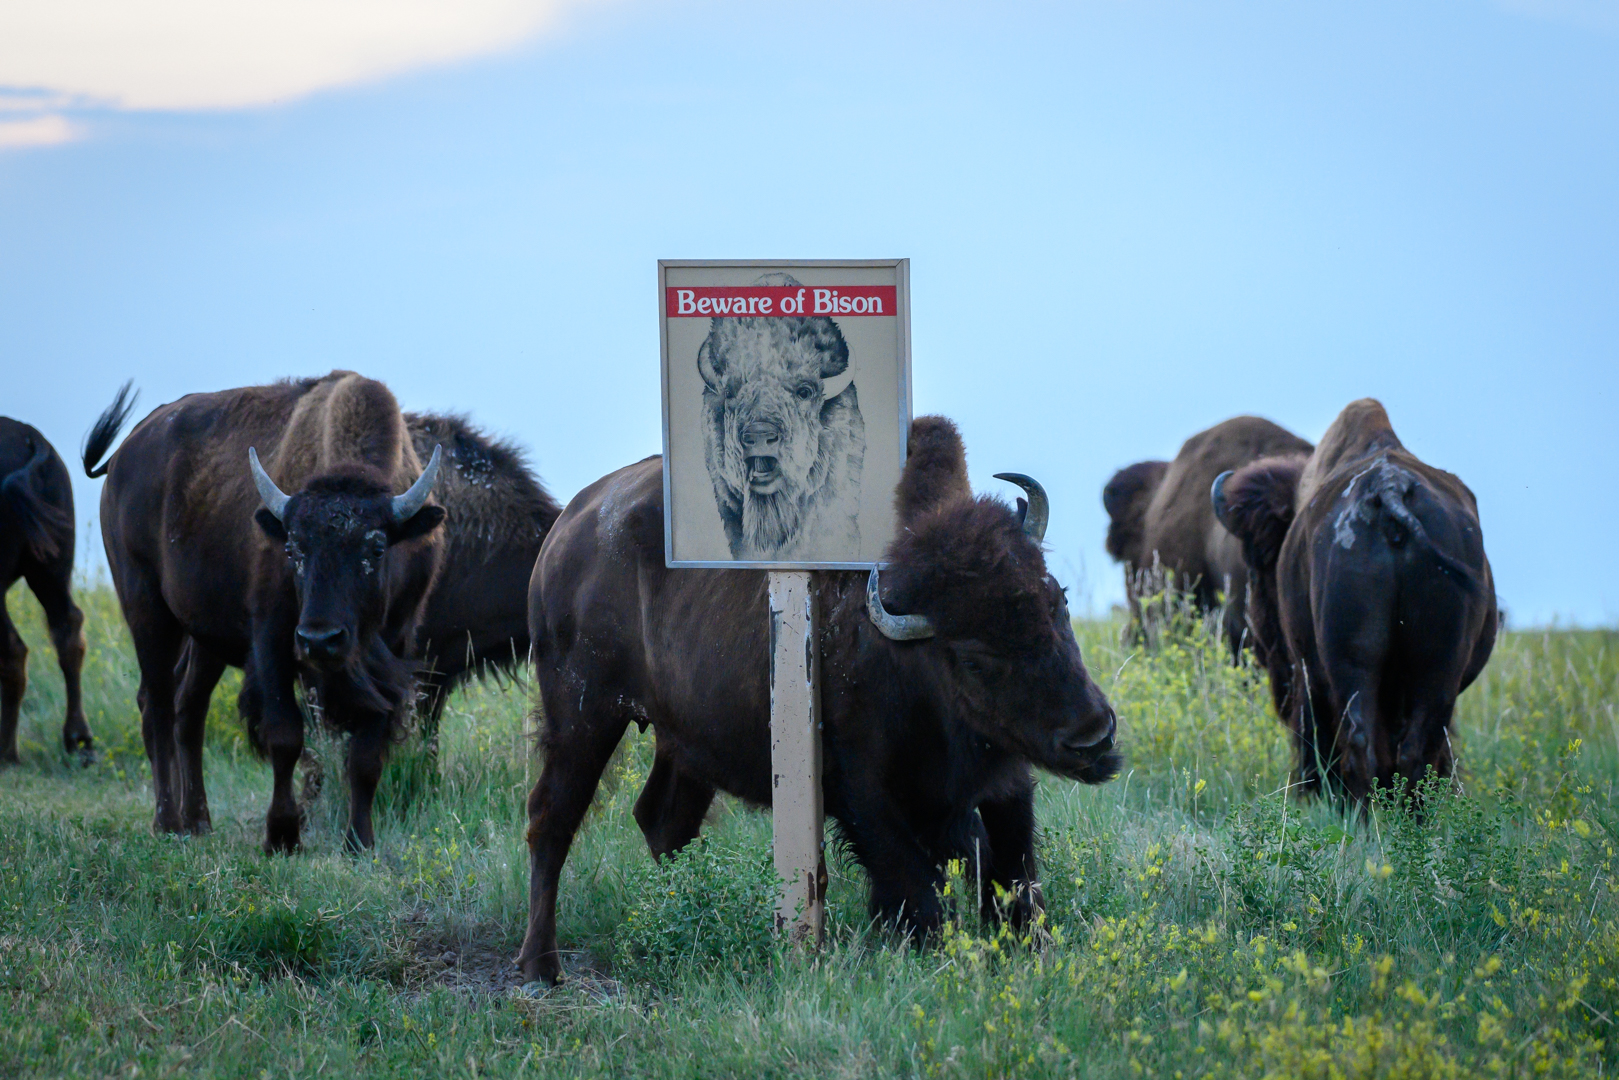 Beware of Bison Sign Shares an Ironic Message